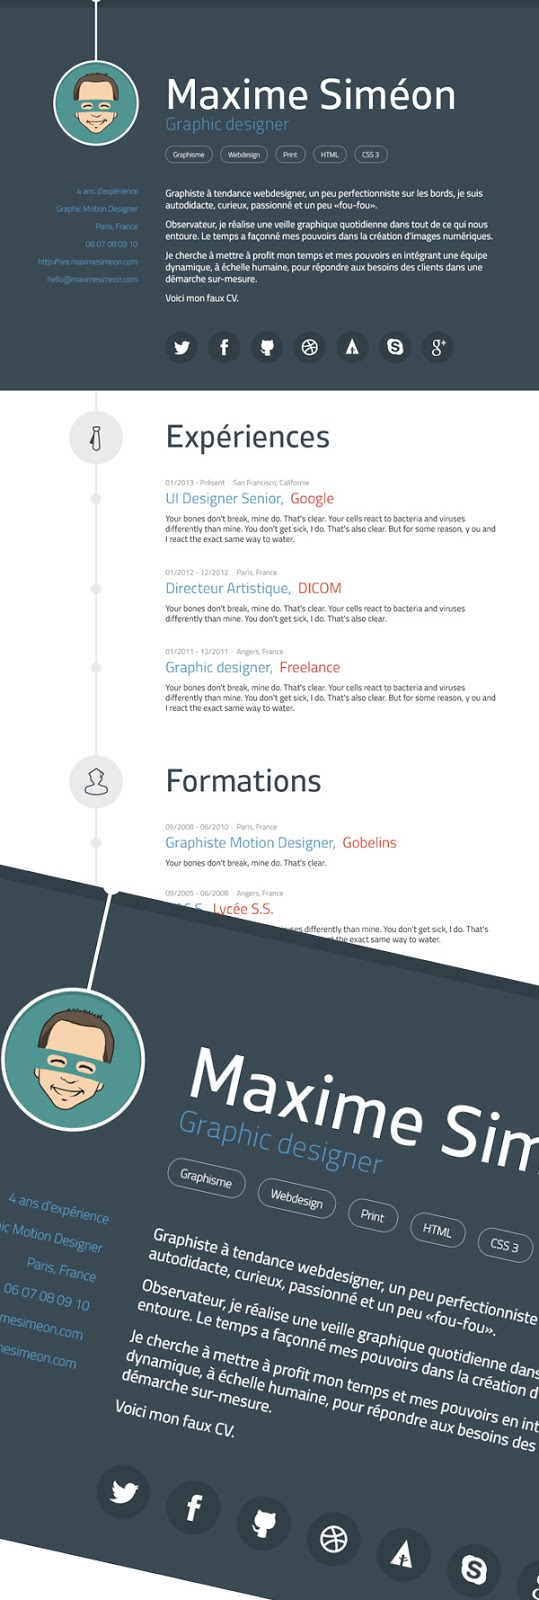 Curriculum Vitae Design Inspiration Considered Design